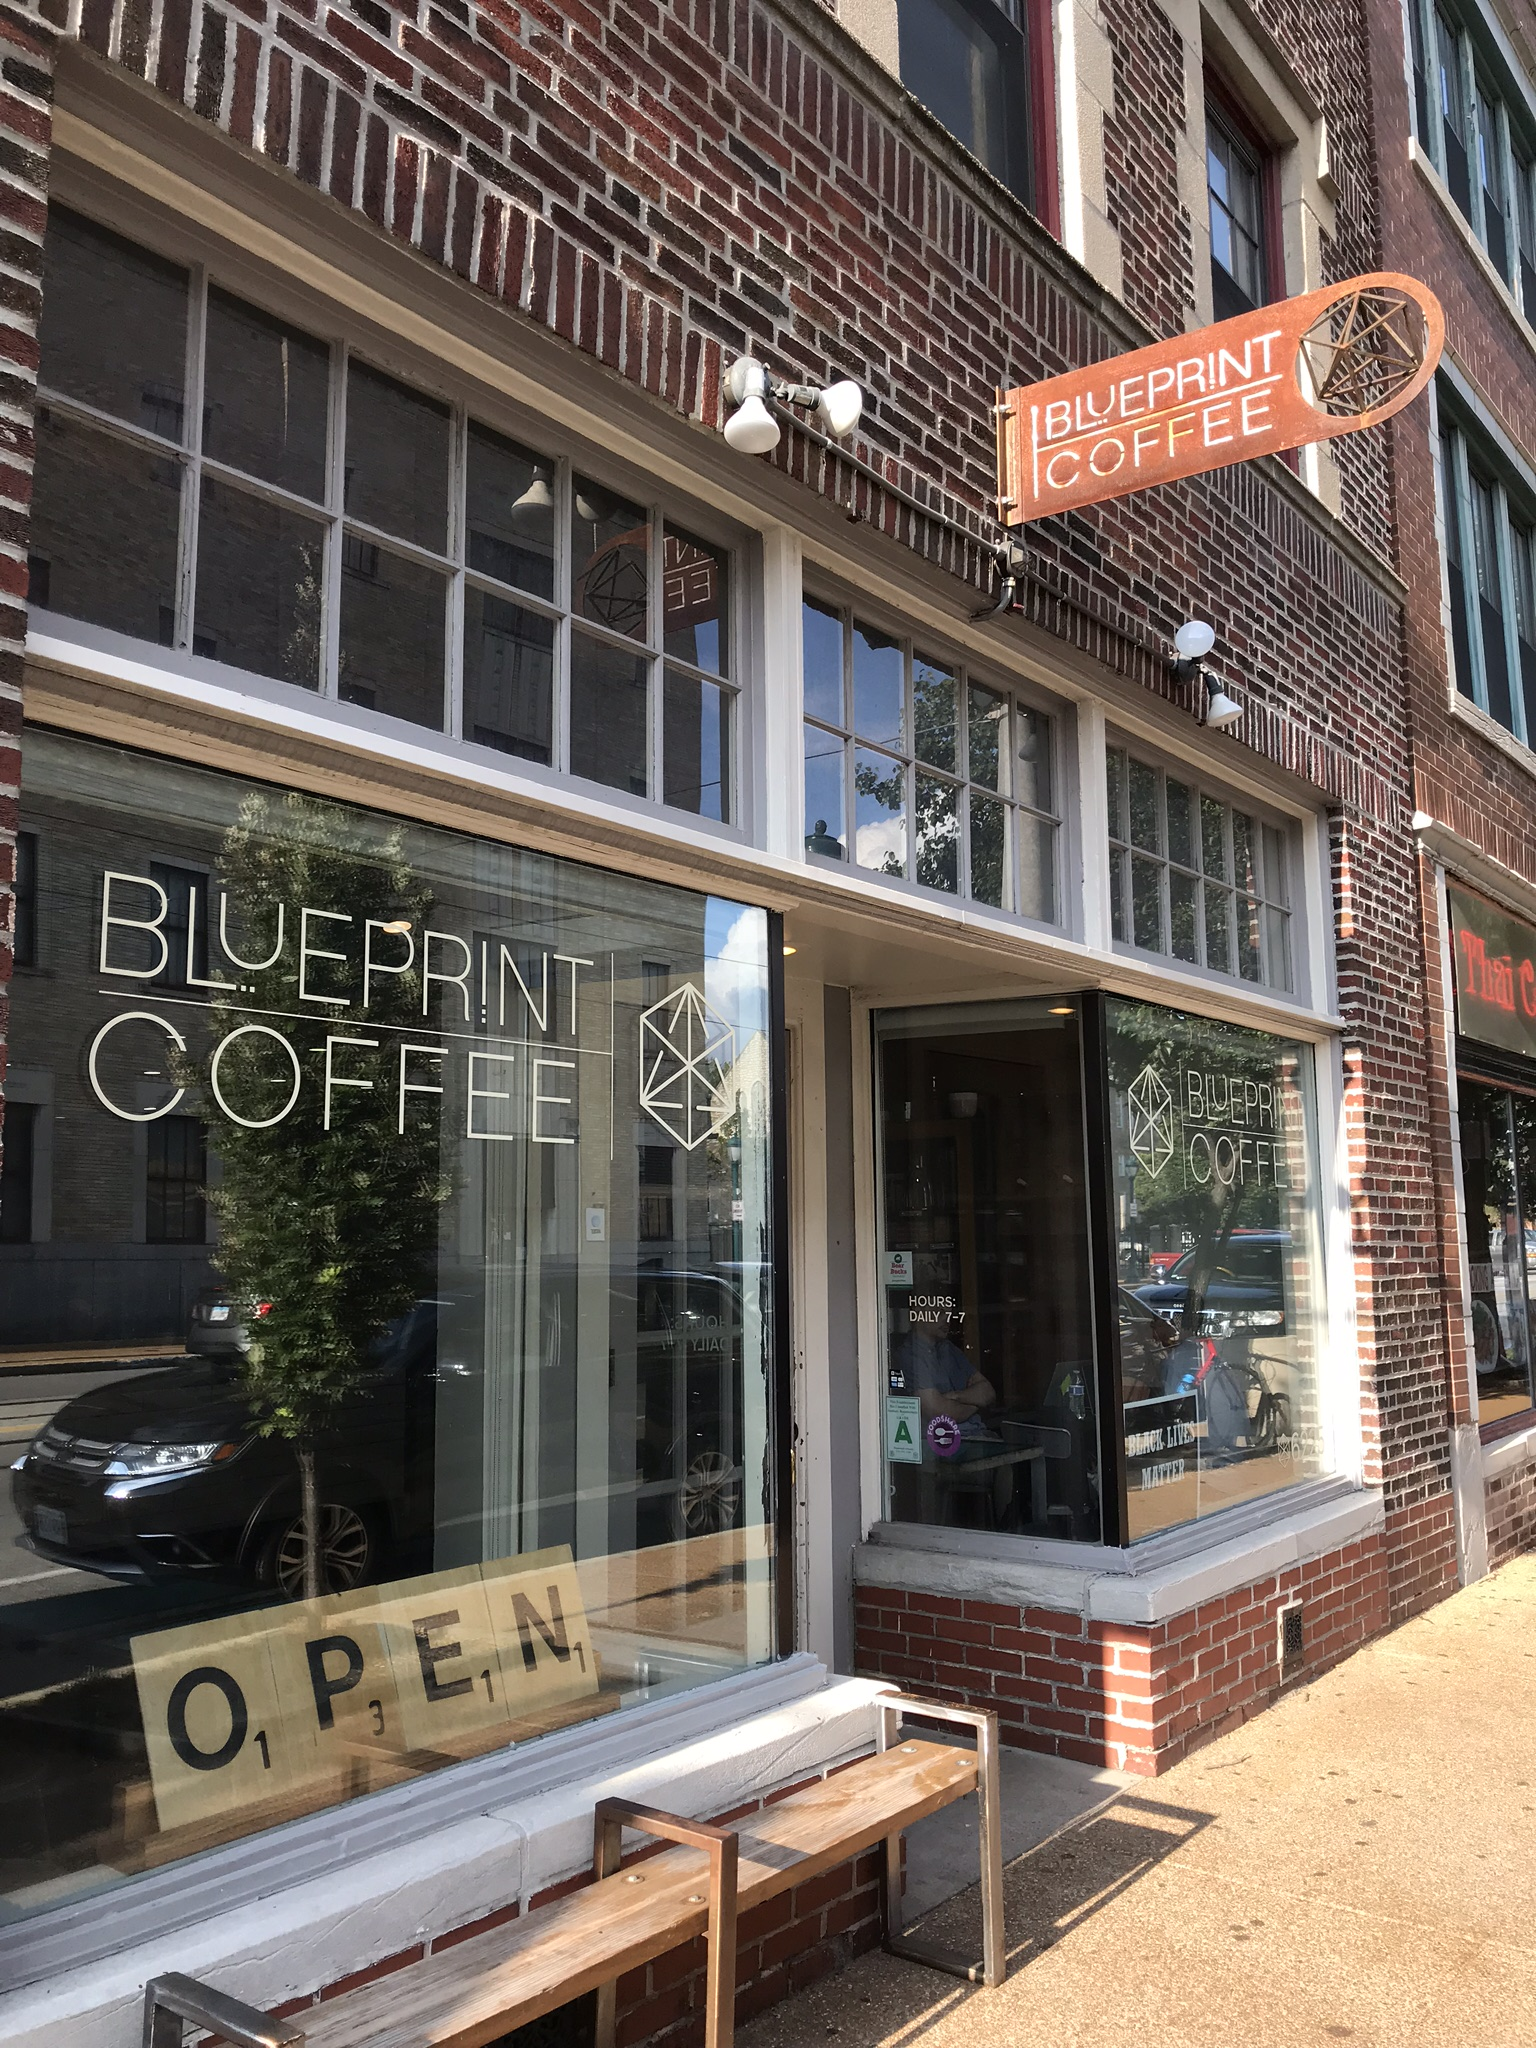 Blueprint coffee st louis mo get out and travel 38655765 90300686 malvernweather Choice Image